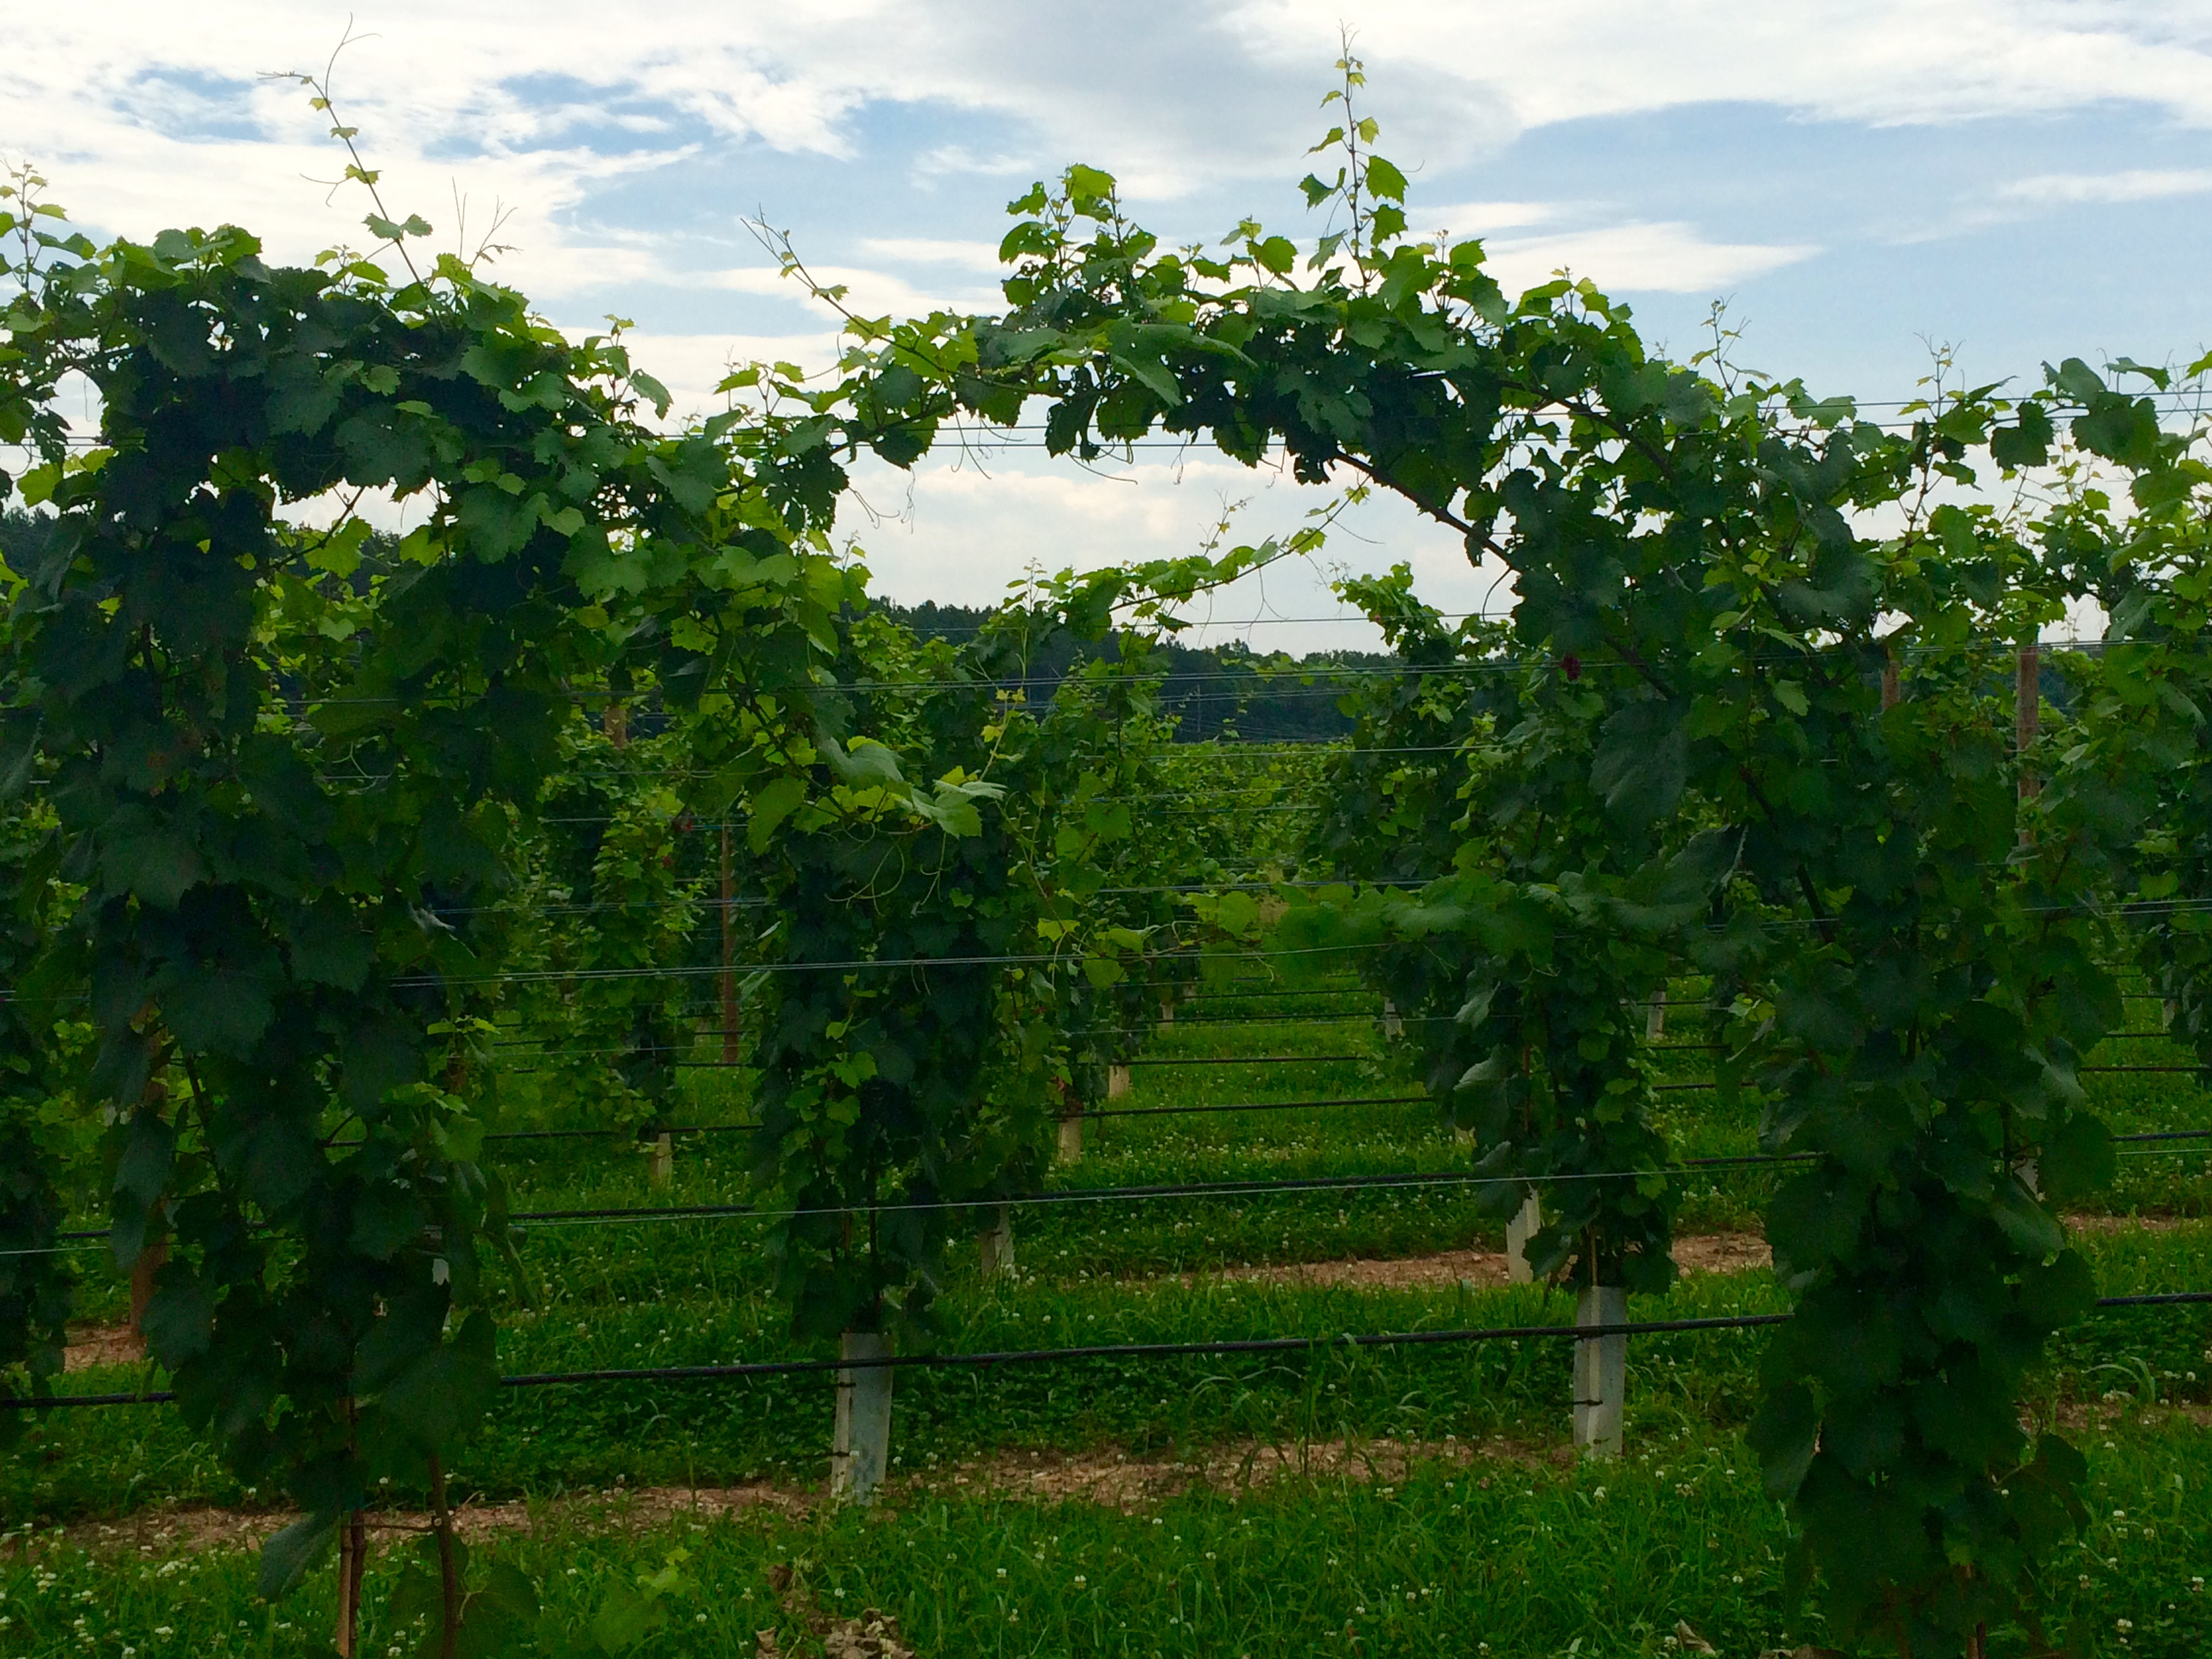 Middle Fork Farm and Vineyard, Scottsville, VA